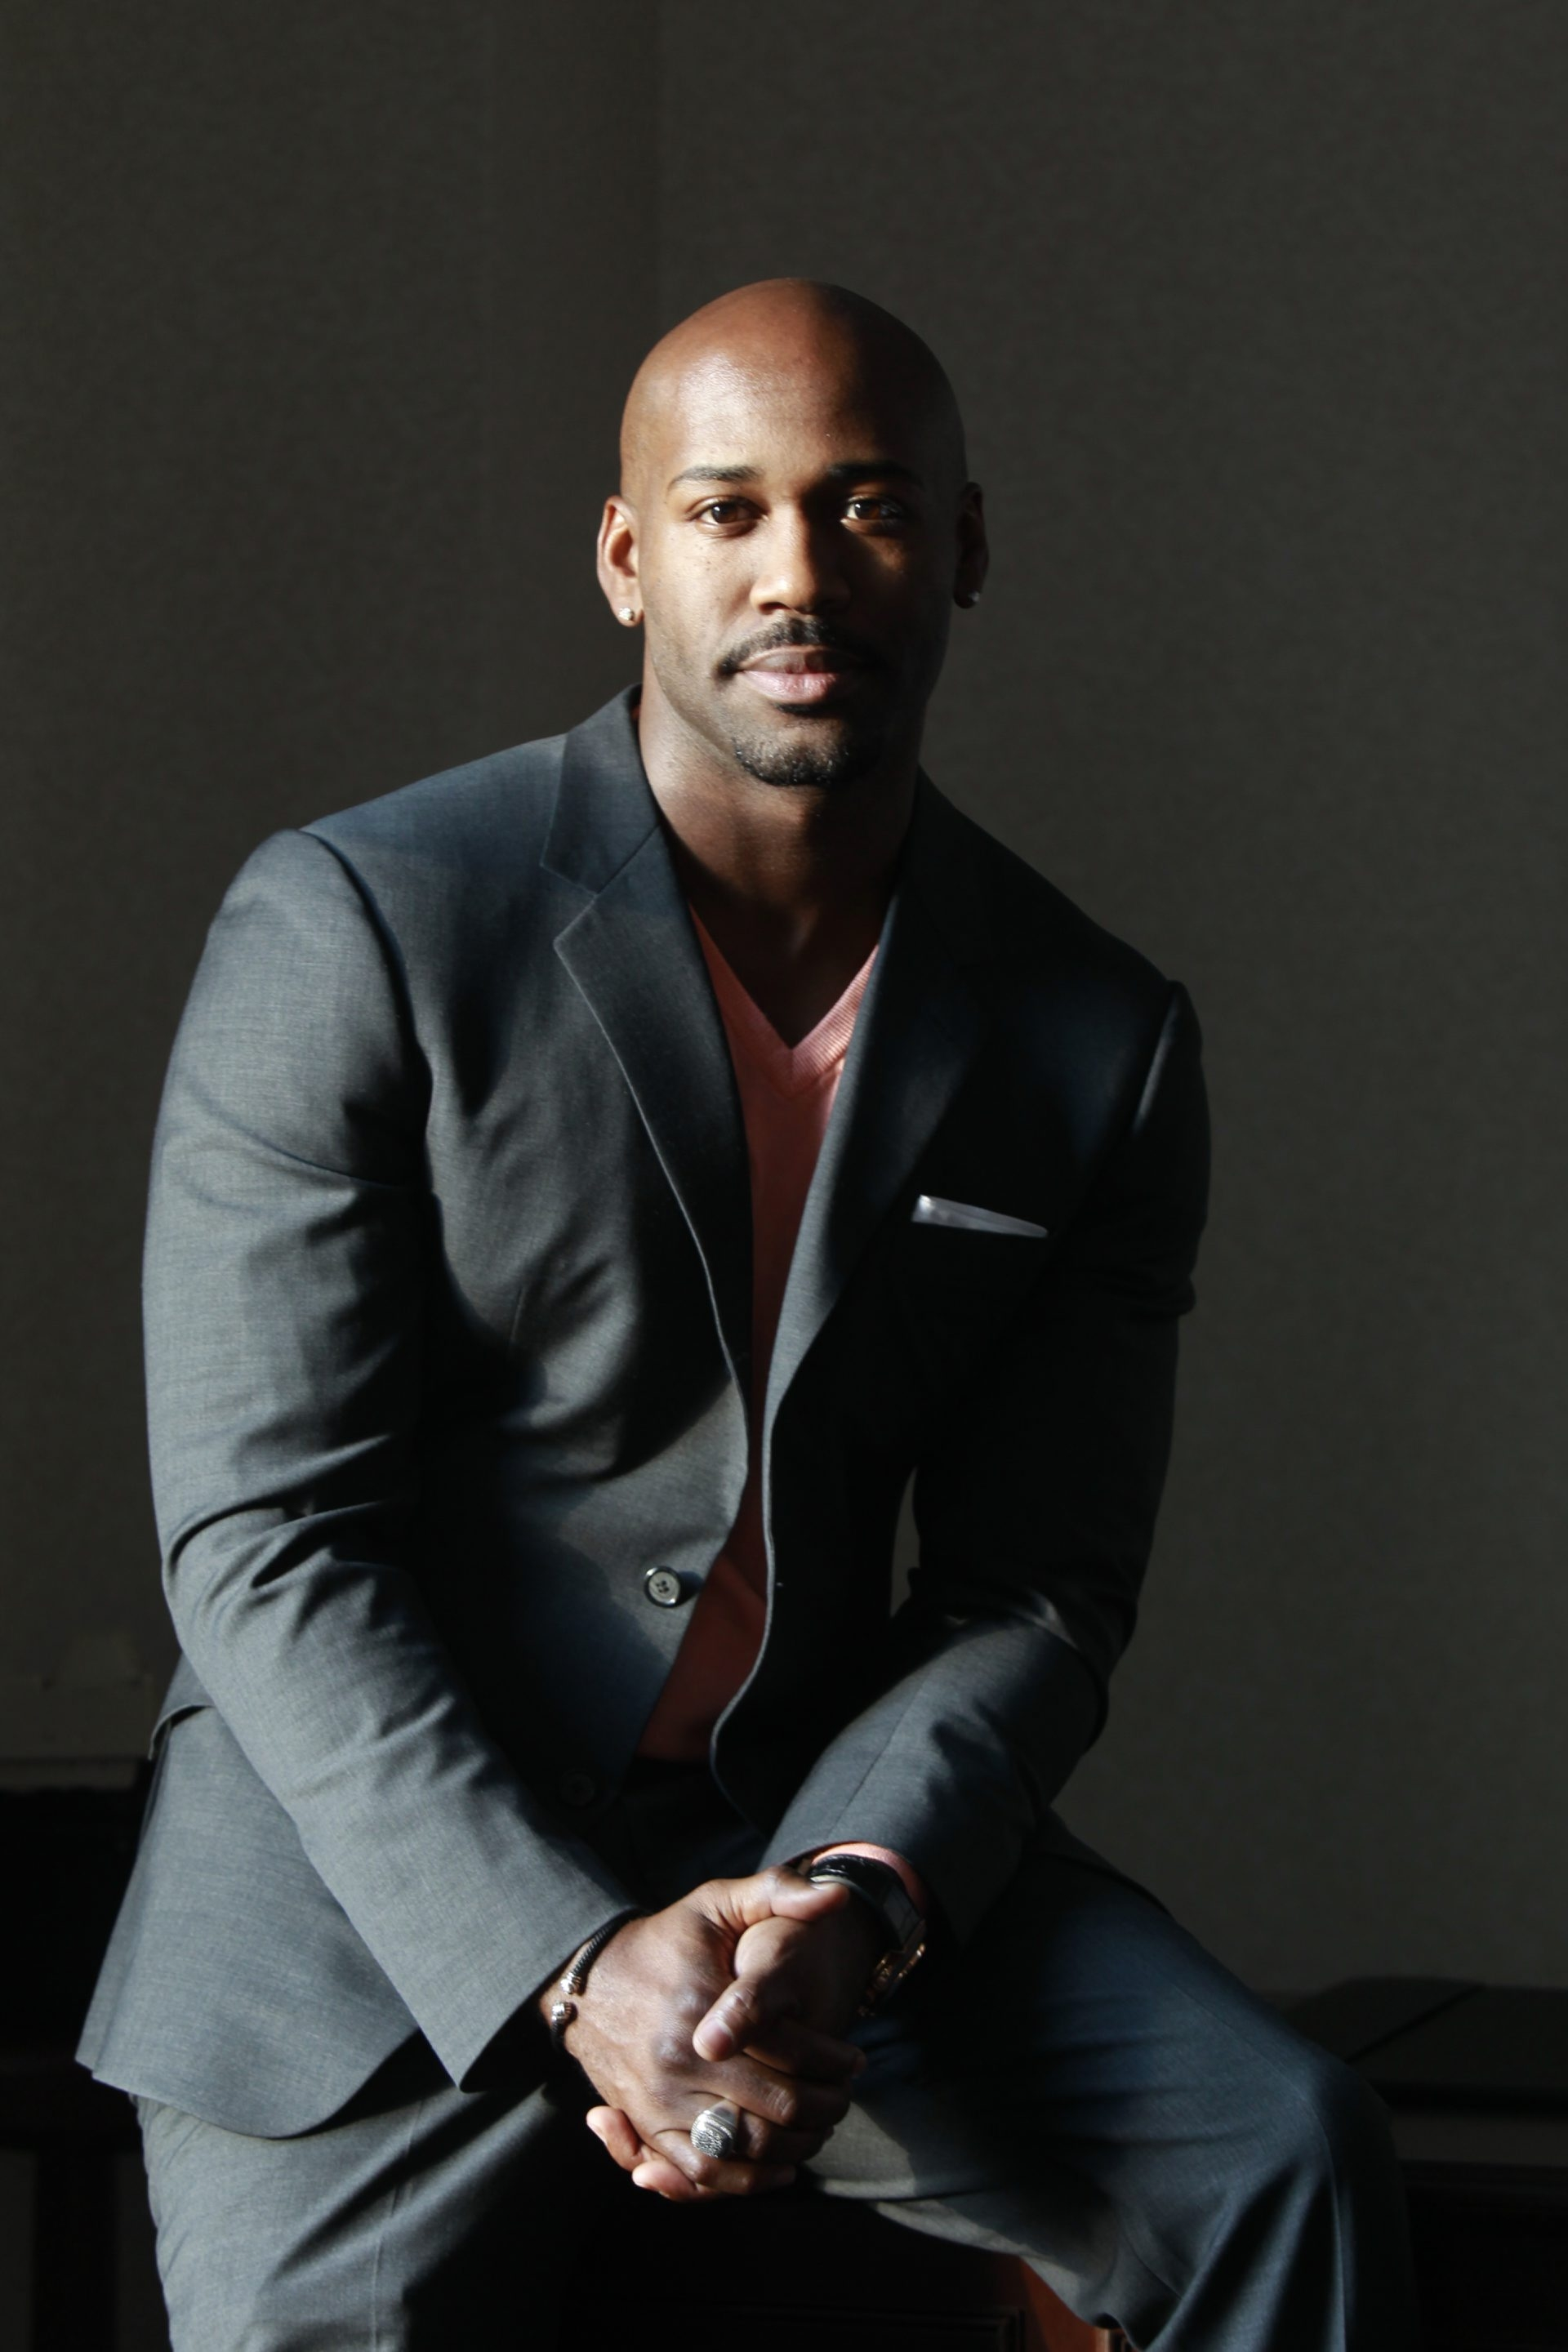 """Biggest Loser"" trainer Dolvett Quince says 95 percent of people who lose weight gain it back because of deprivation diets."